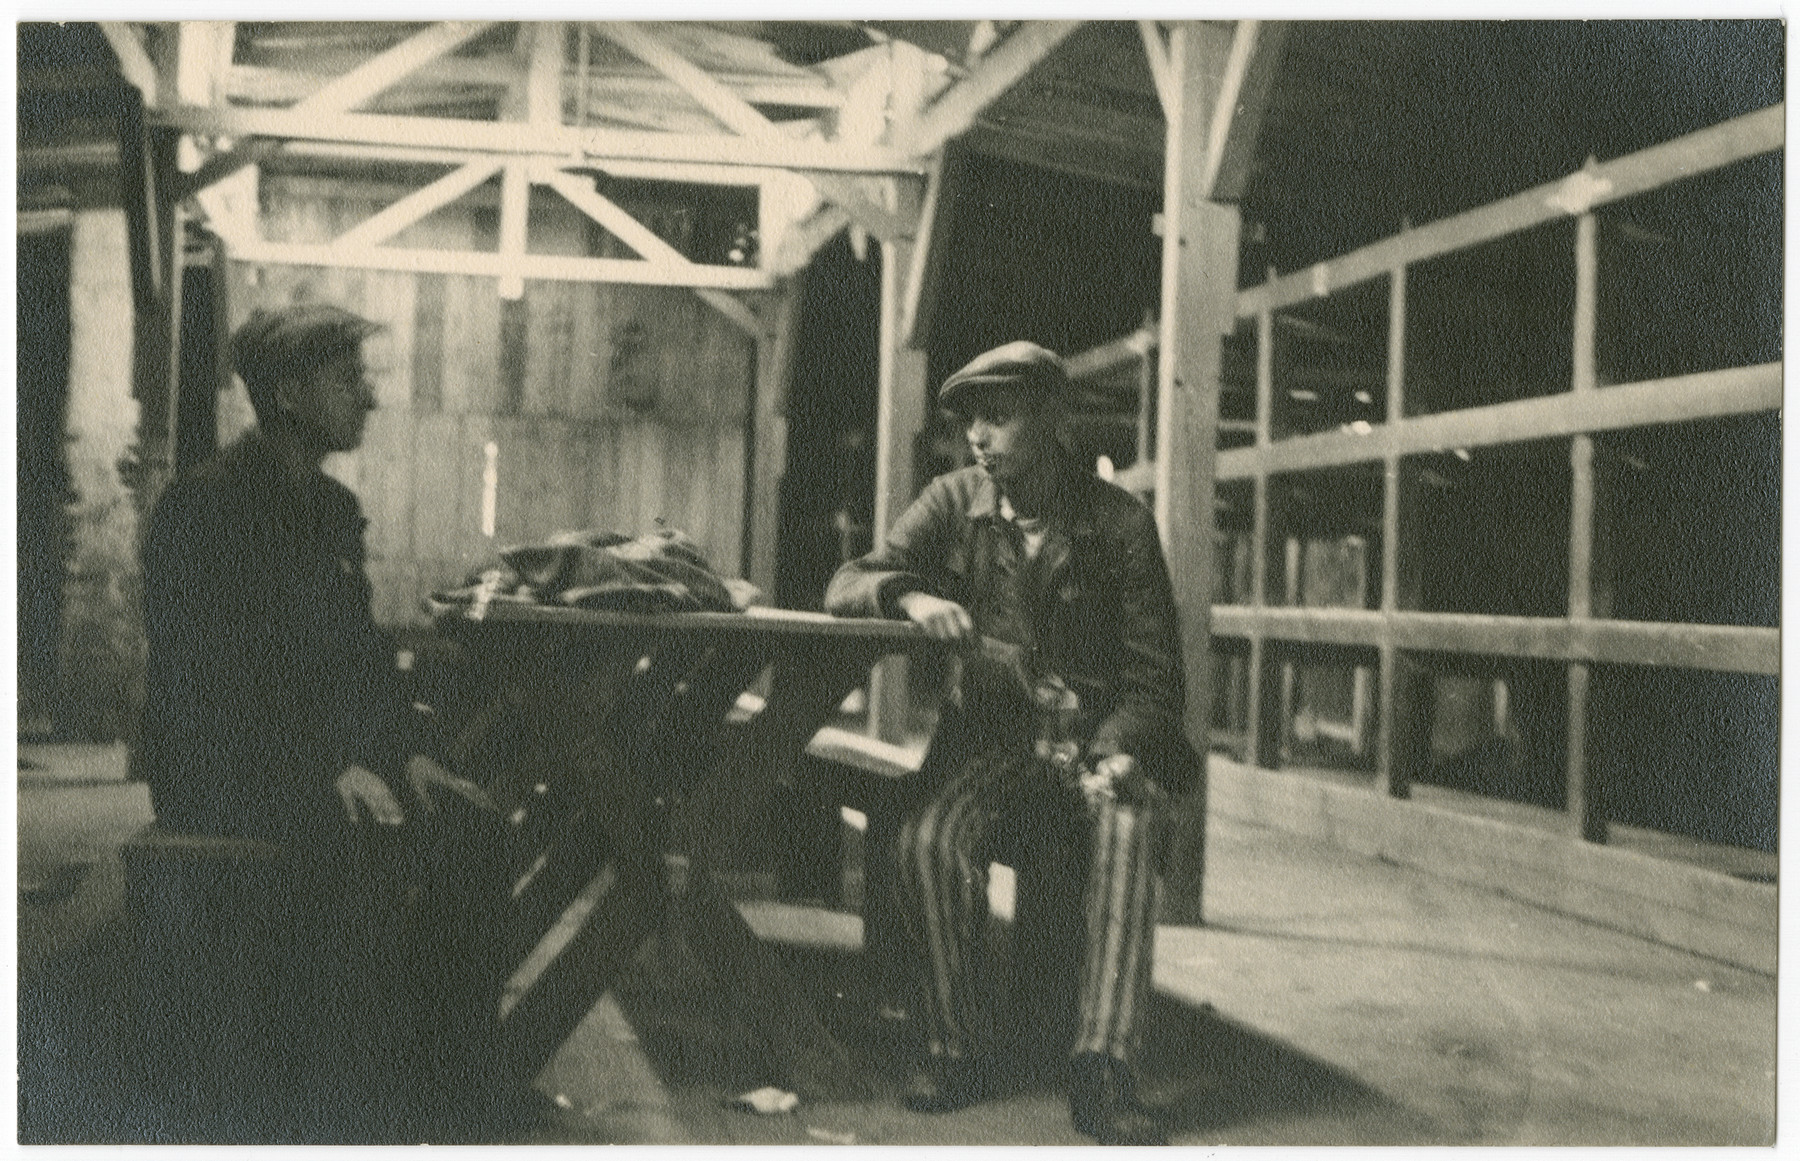 Two survivors of the Buchenwald concentration camp sit at a table inside a barrack following liberation.